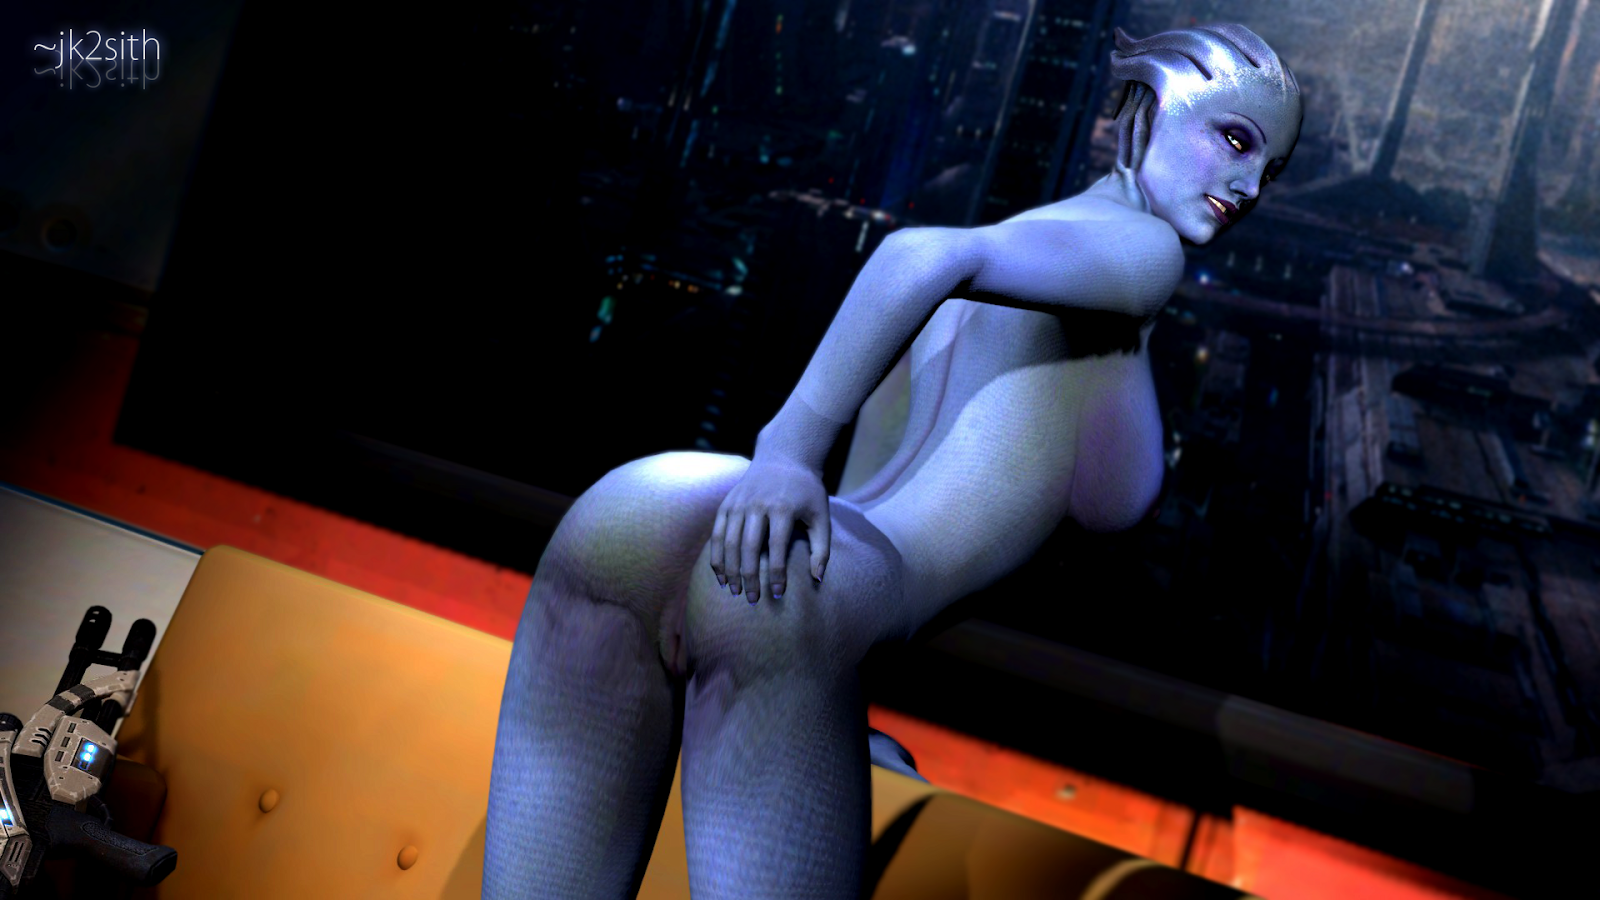 Mass effect sex game